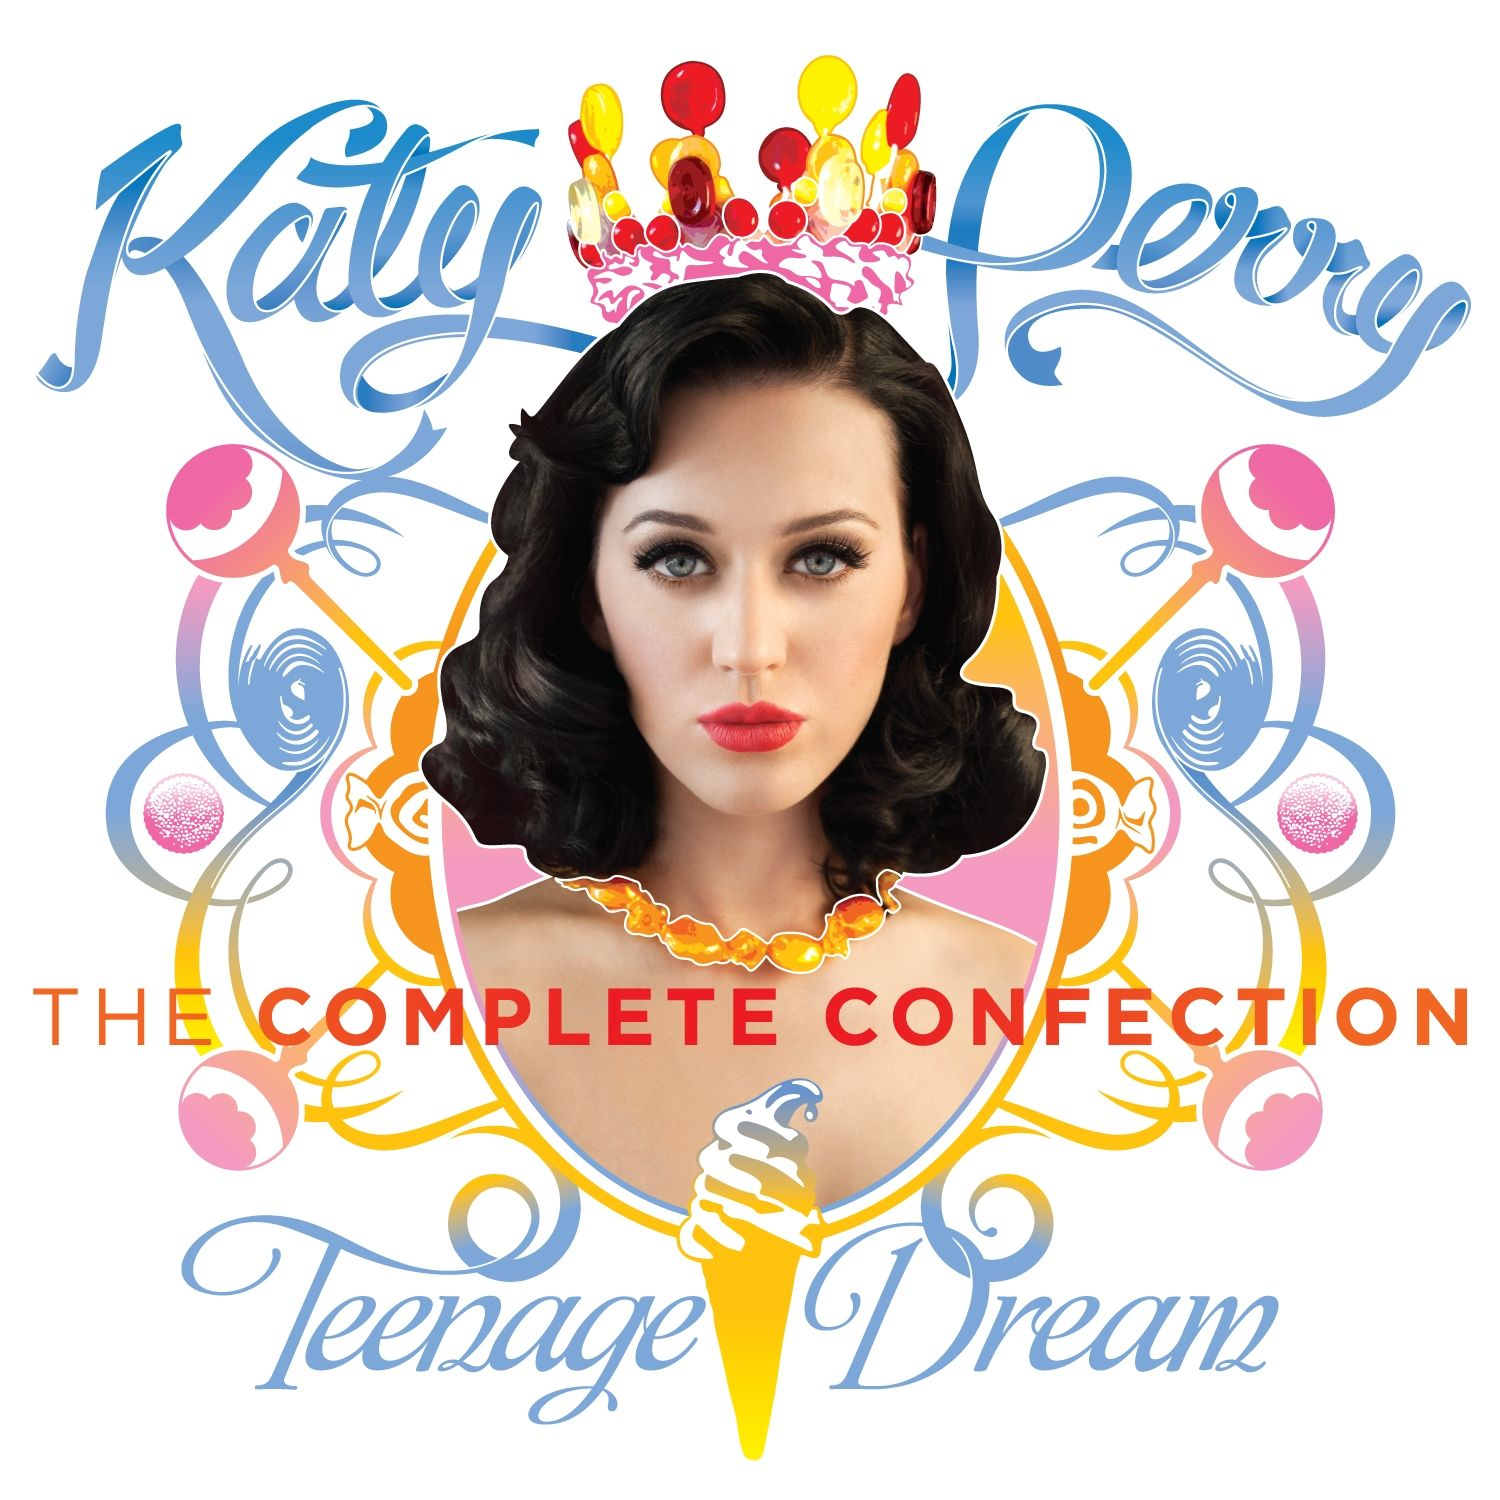 Image result for katy perry teenage dream the complete confection album cover